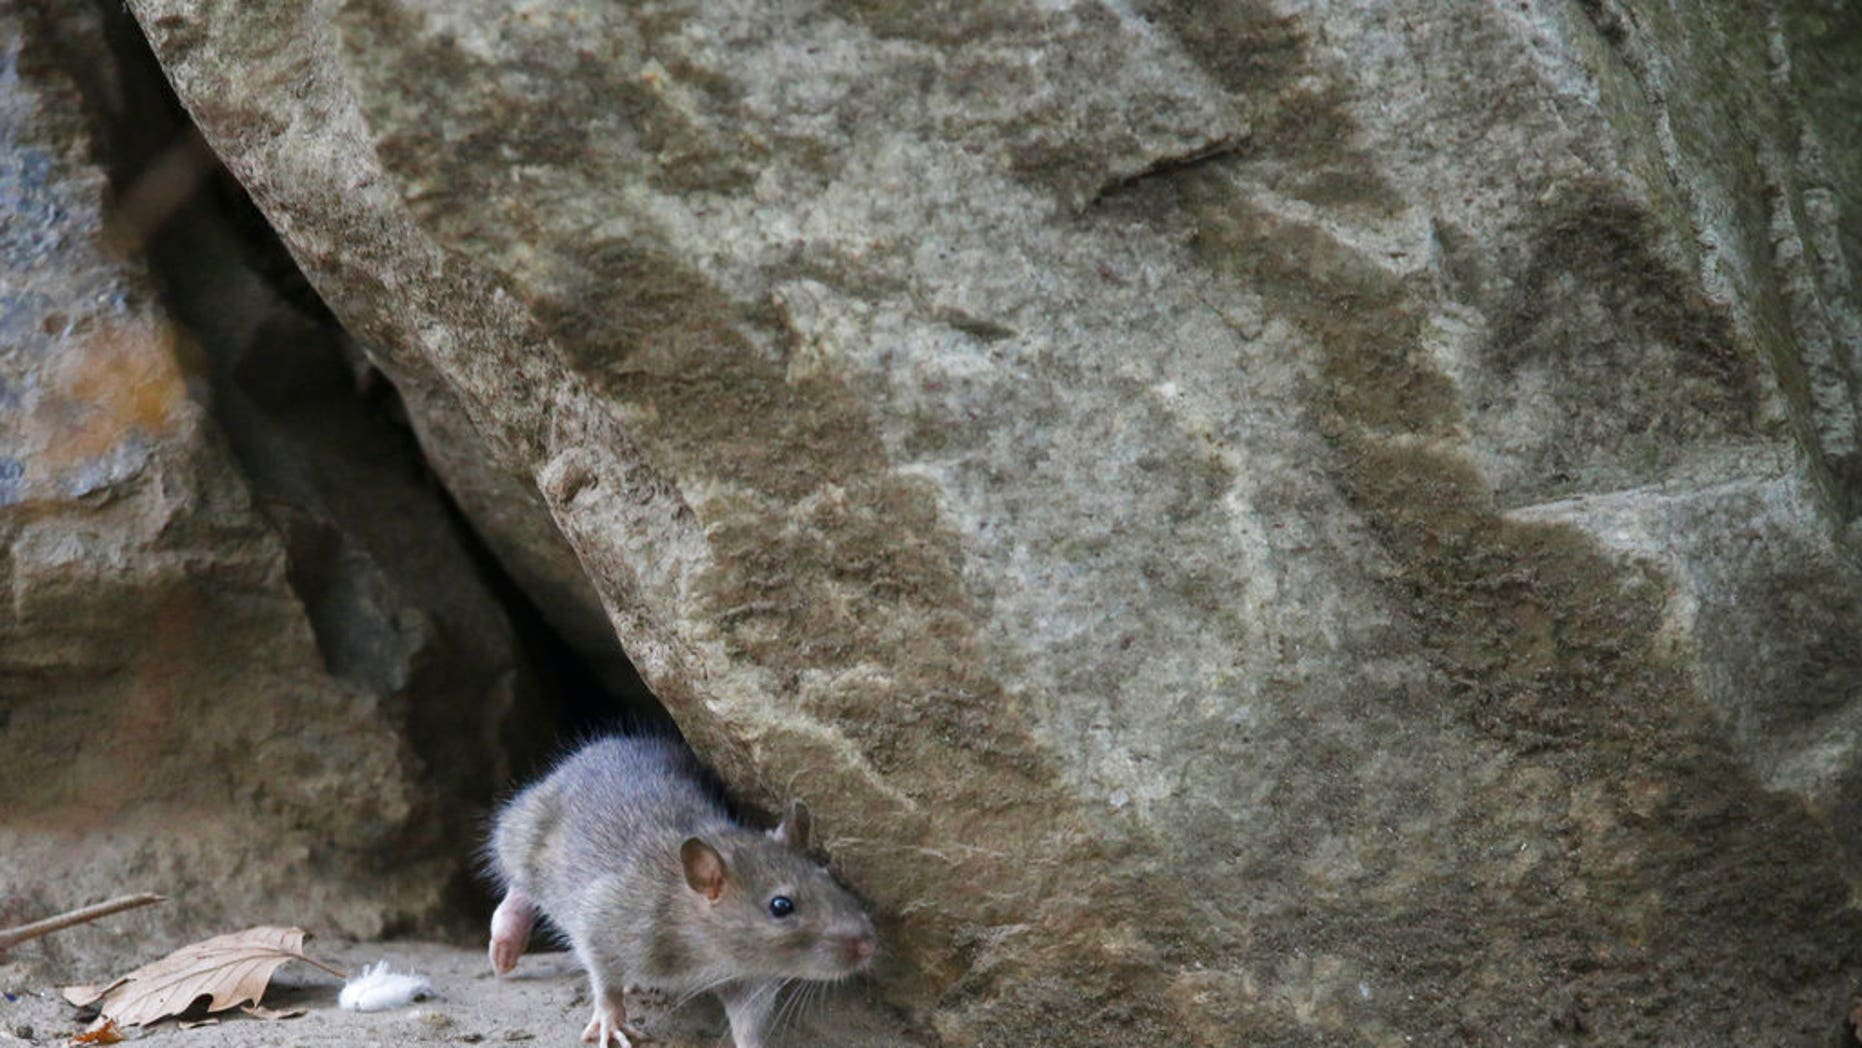 NYC Mayor Bill de Blasio has announced a $32 million plan to reduce the city's rat population.